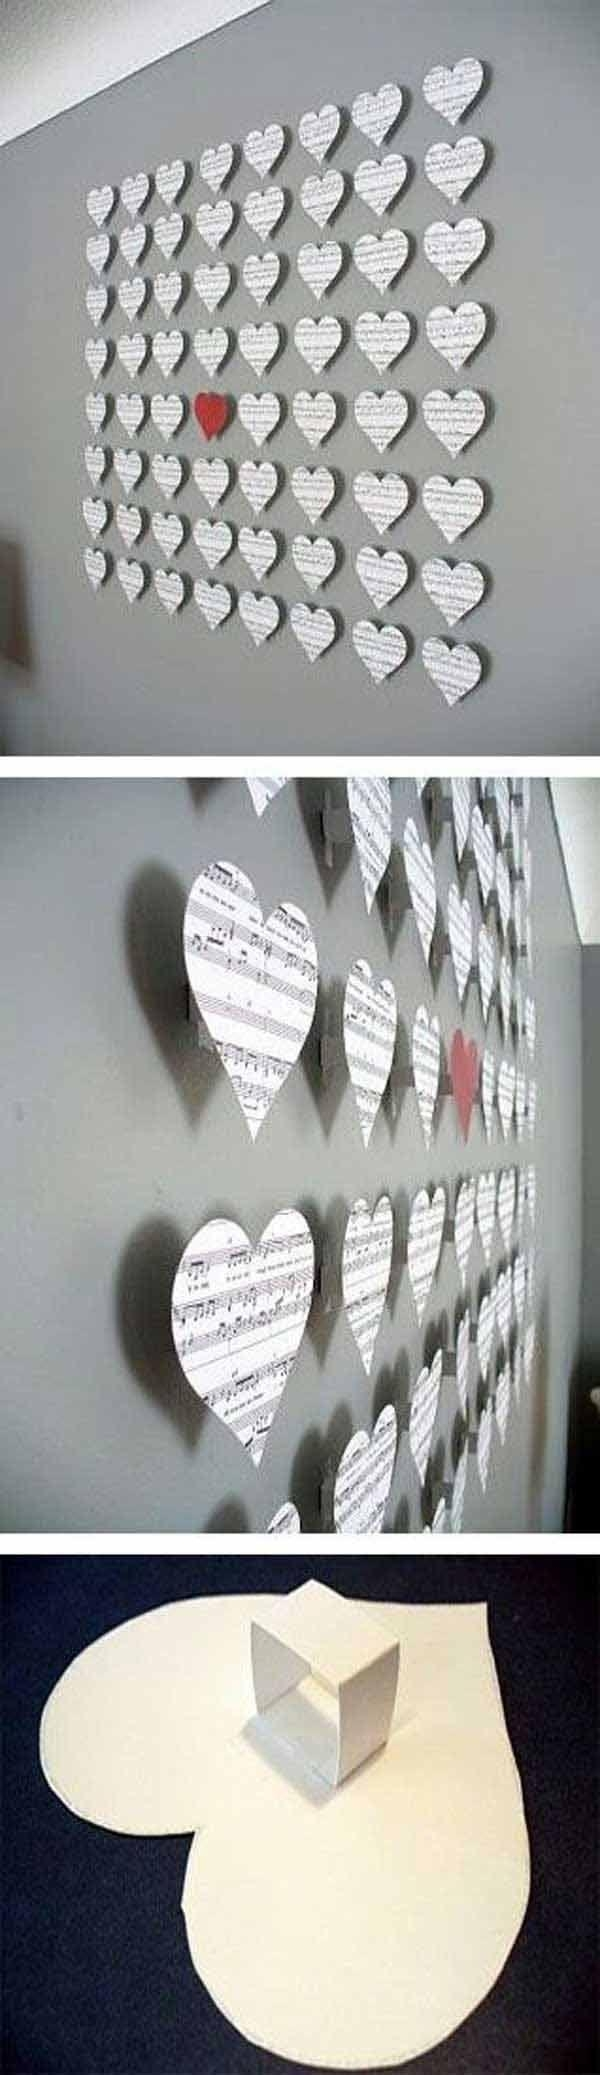 Best 20+ Diy Wall Ideas On Pinterest | Cheap Bedroom Ideas, Cheap For Pinterest Diy Wall Art (View 11 of 20)